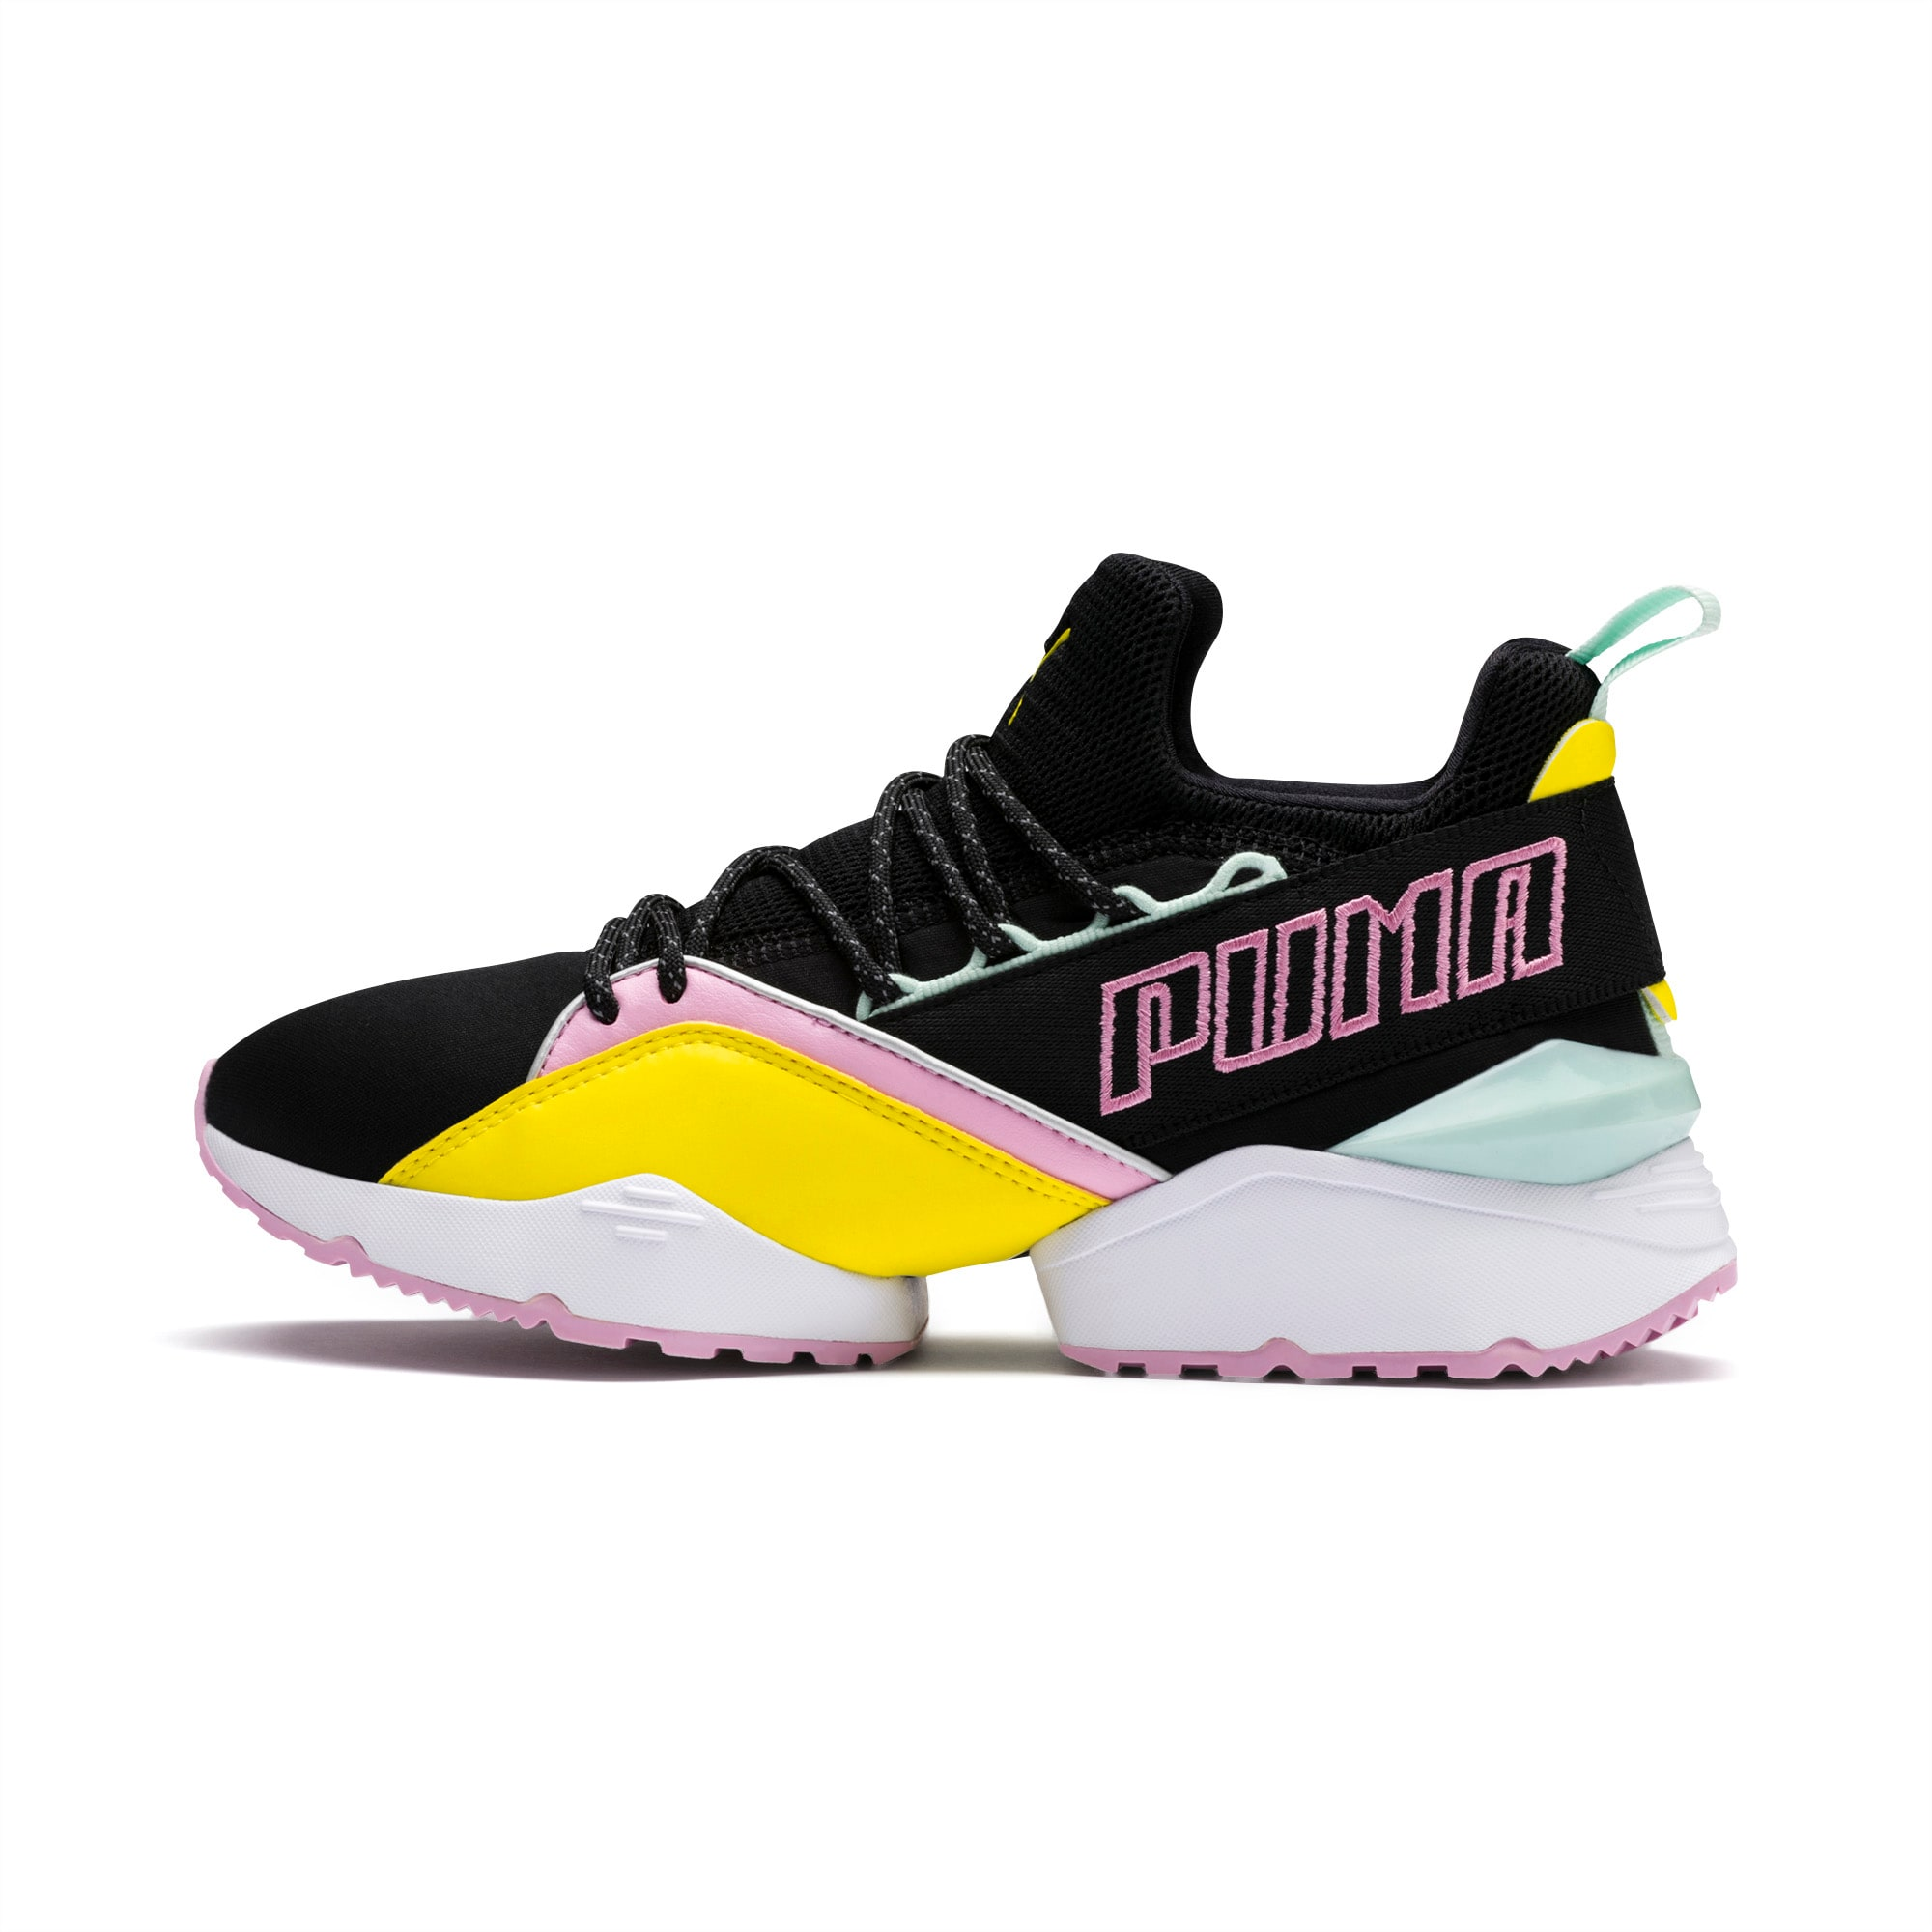 Muse Maia TZ Women's Trainers